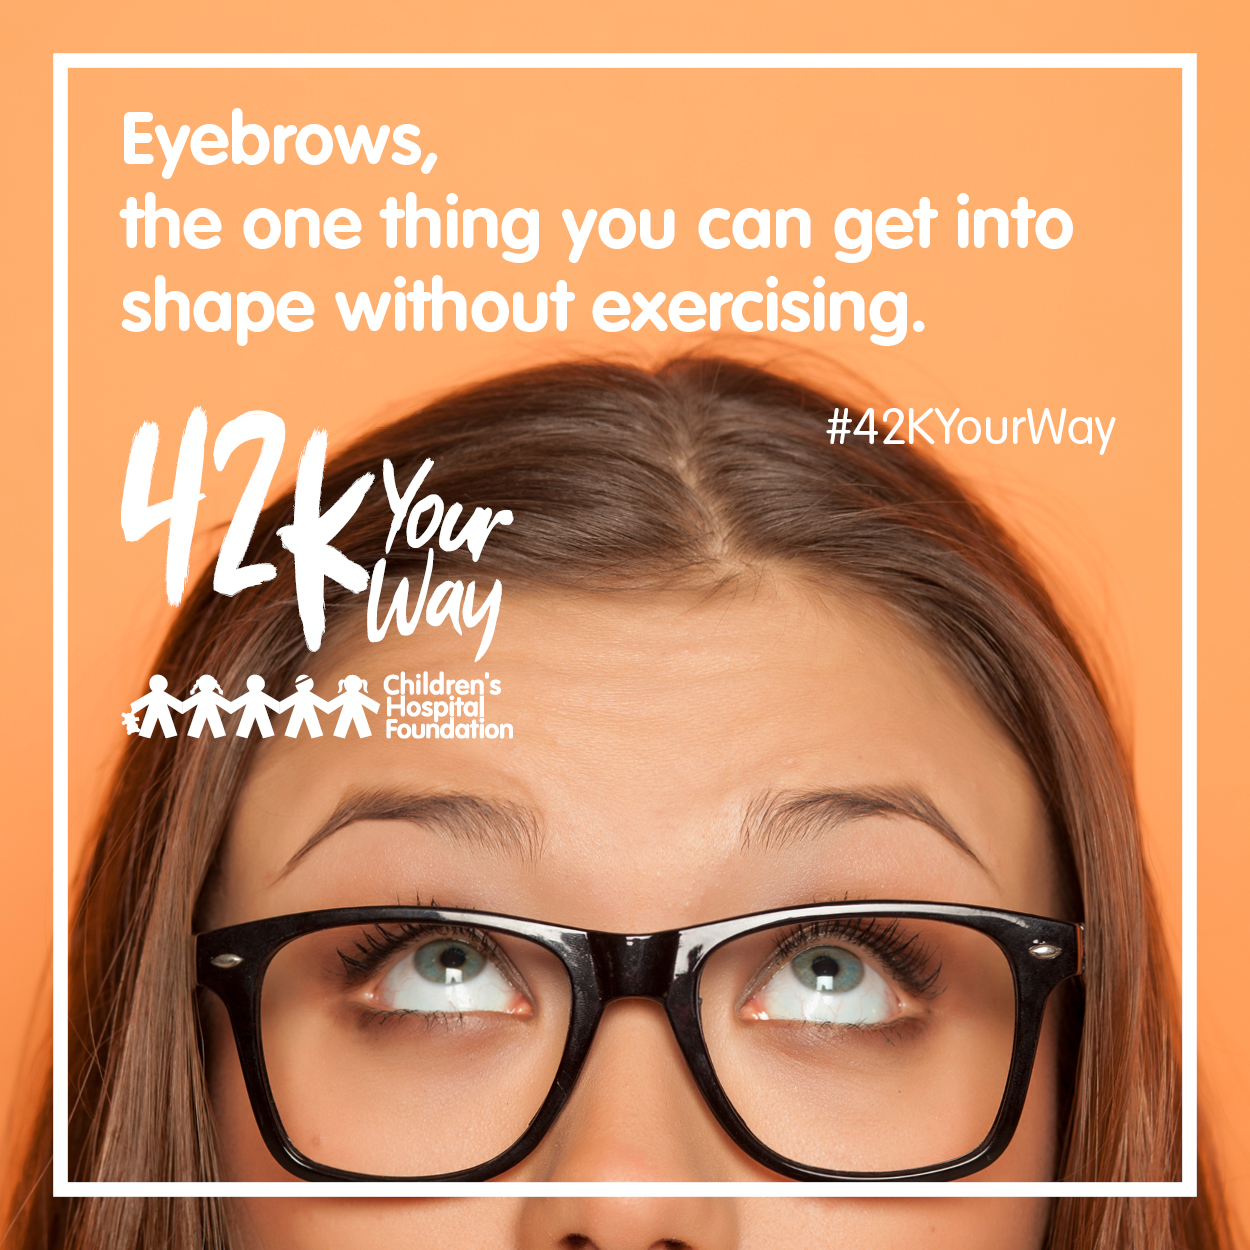 42k Your Way - Eyebrows